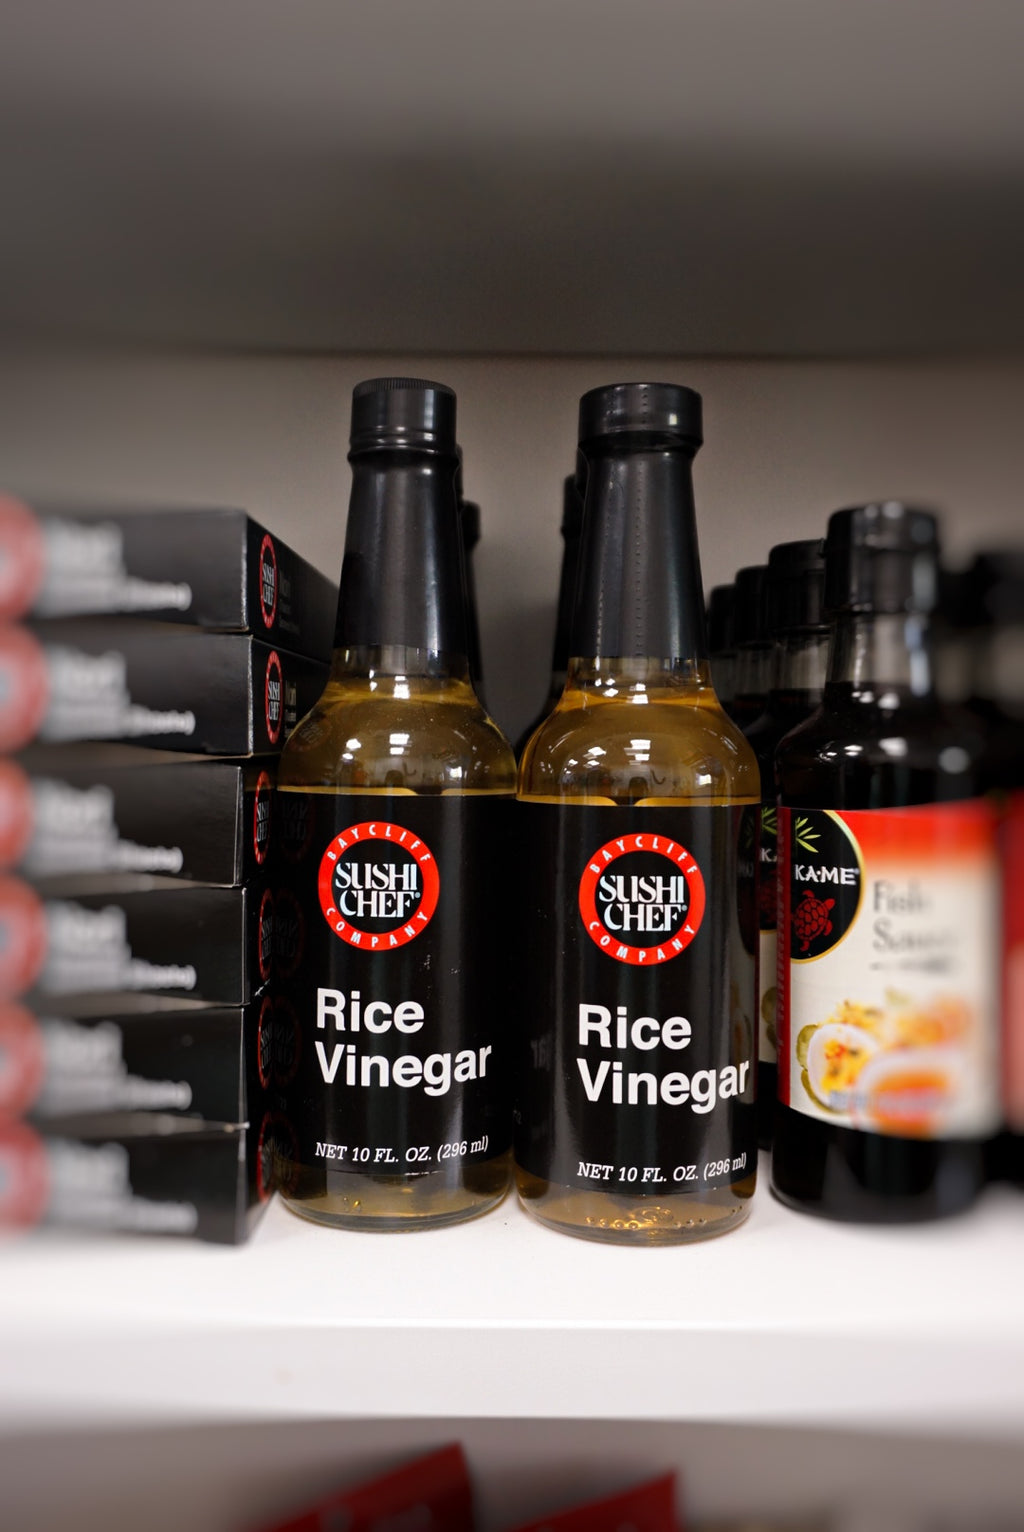 Sushi Chef Rice Vinegar - New Canaan